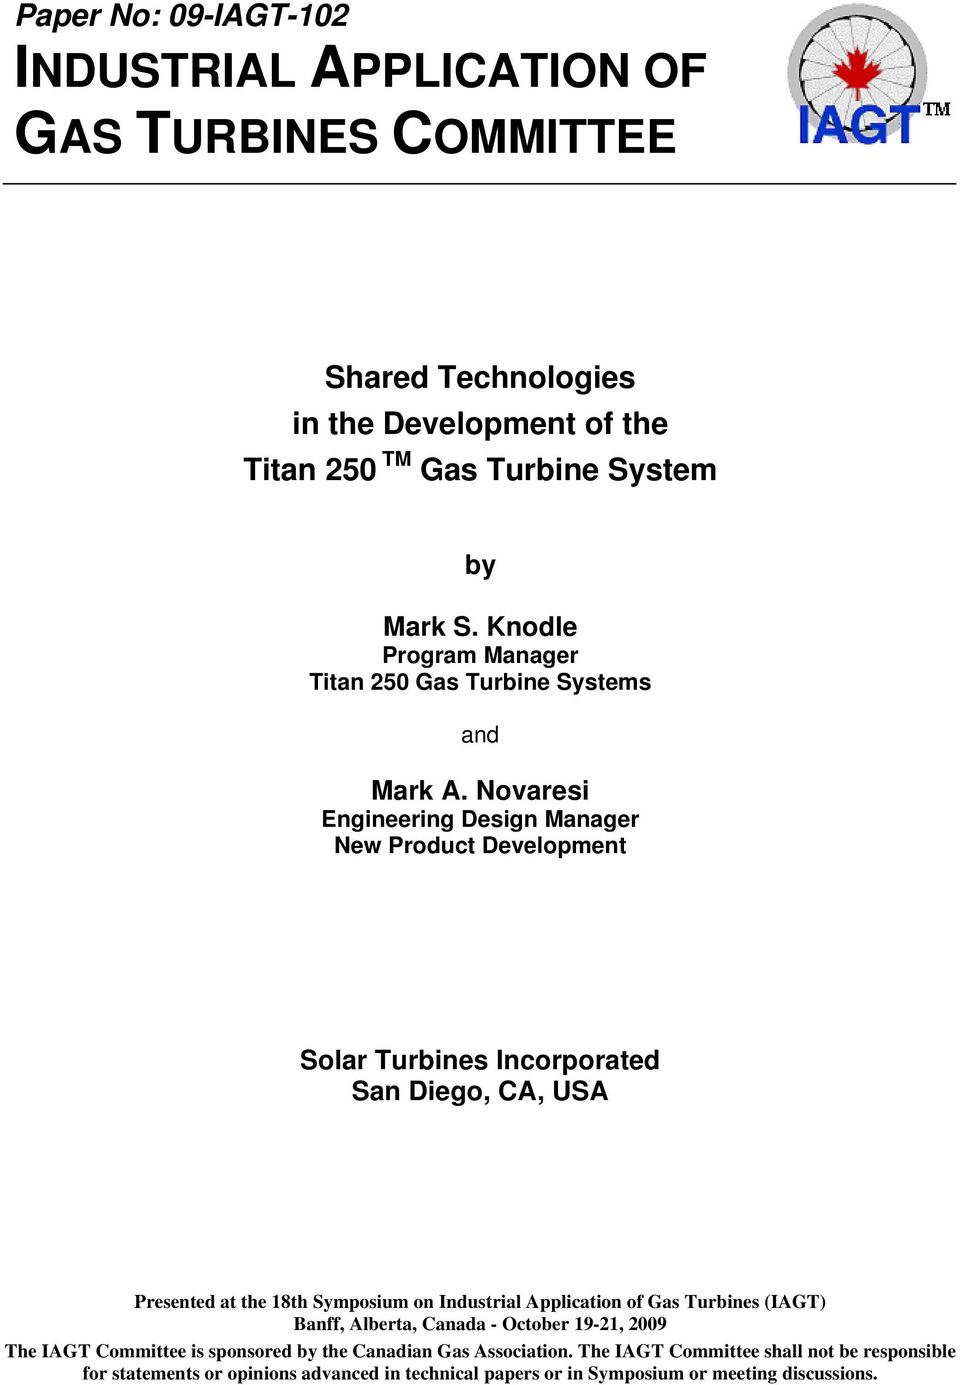 Shared Technologies in the Development of the Titan 250 TM